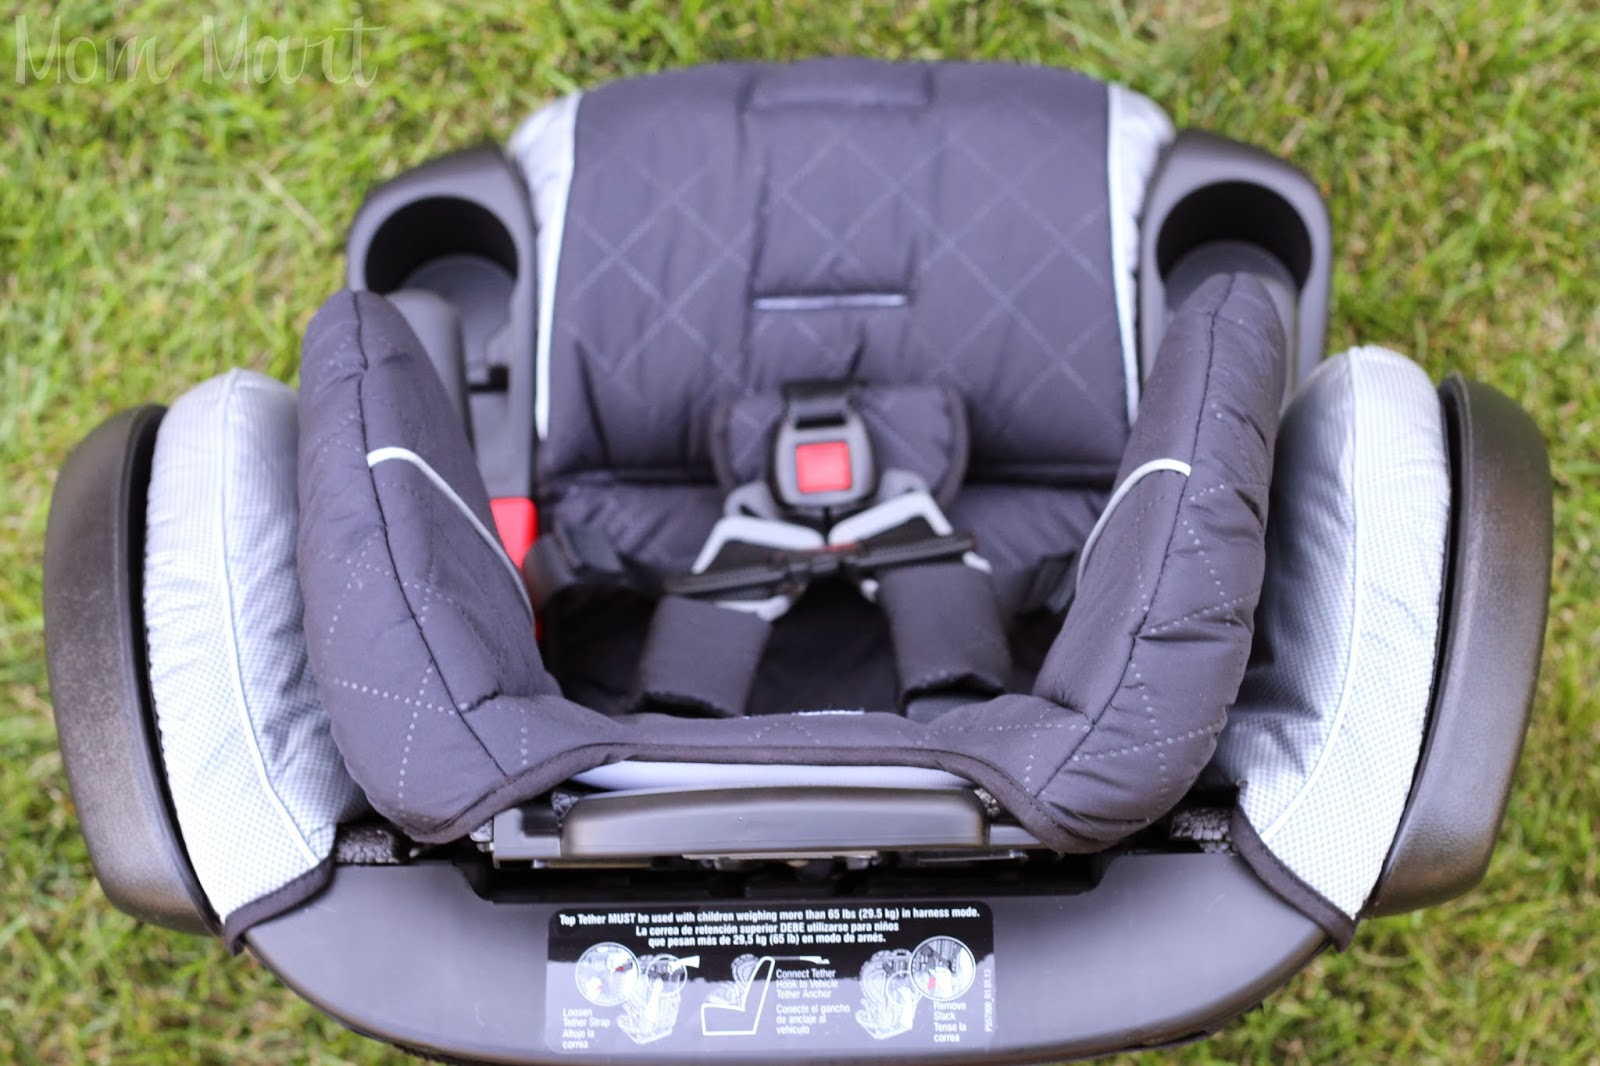 britax frontier vs pinnacle britax ct infographic review britax frontier 90 booster seat. Black Bedroom Furniture Sets. Home Design Ideas